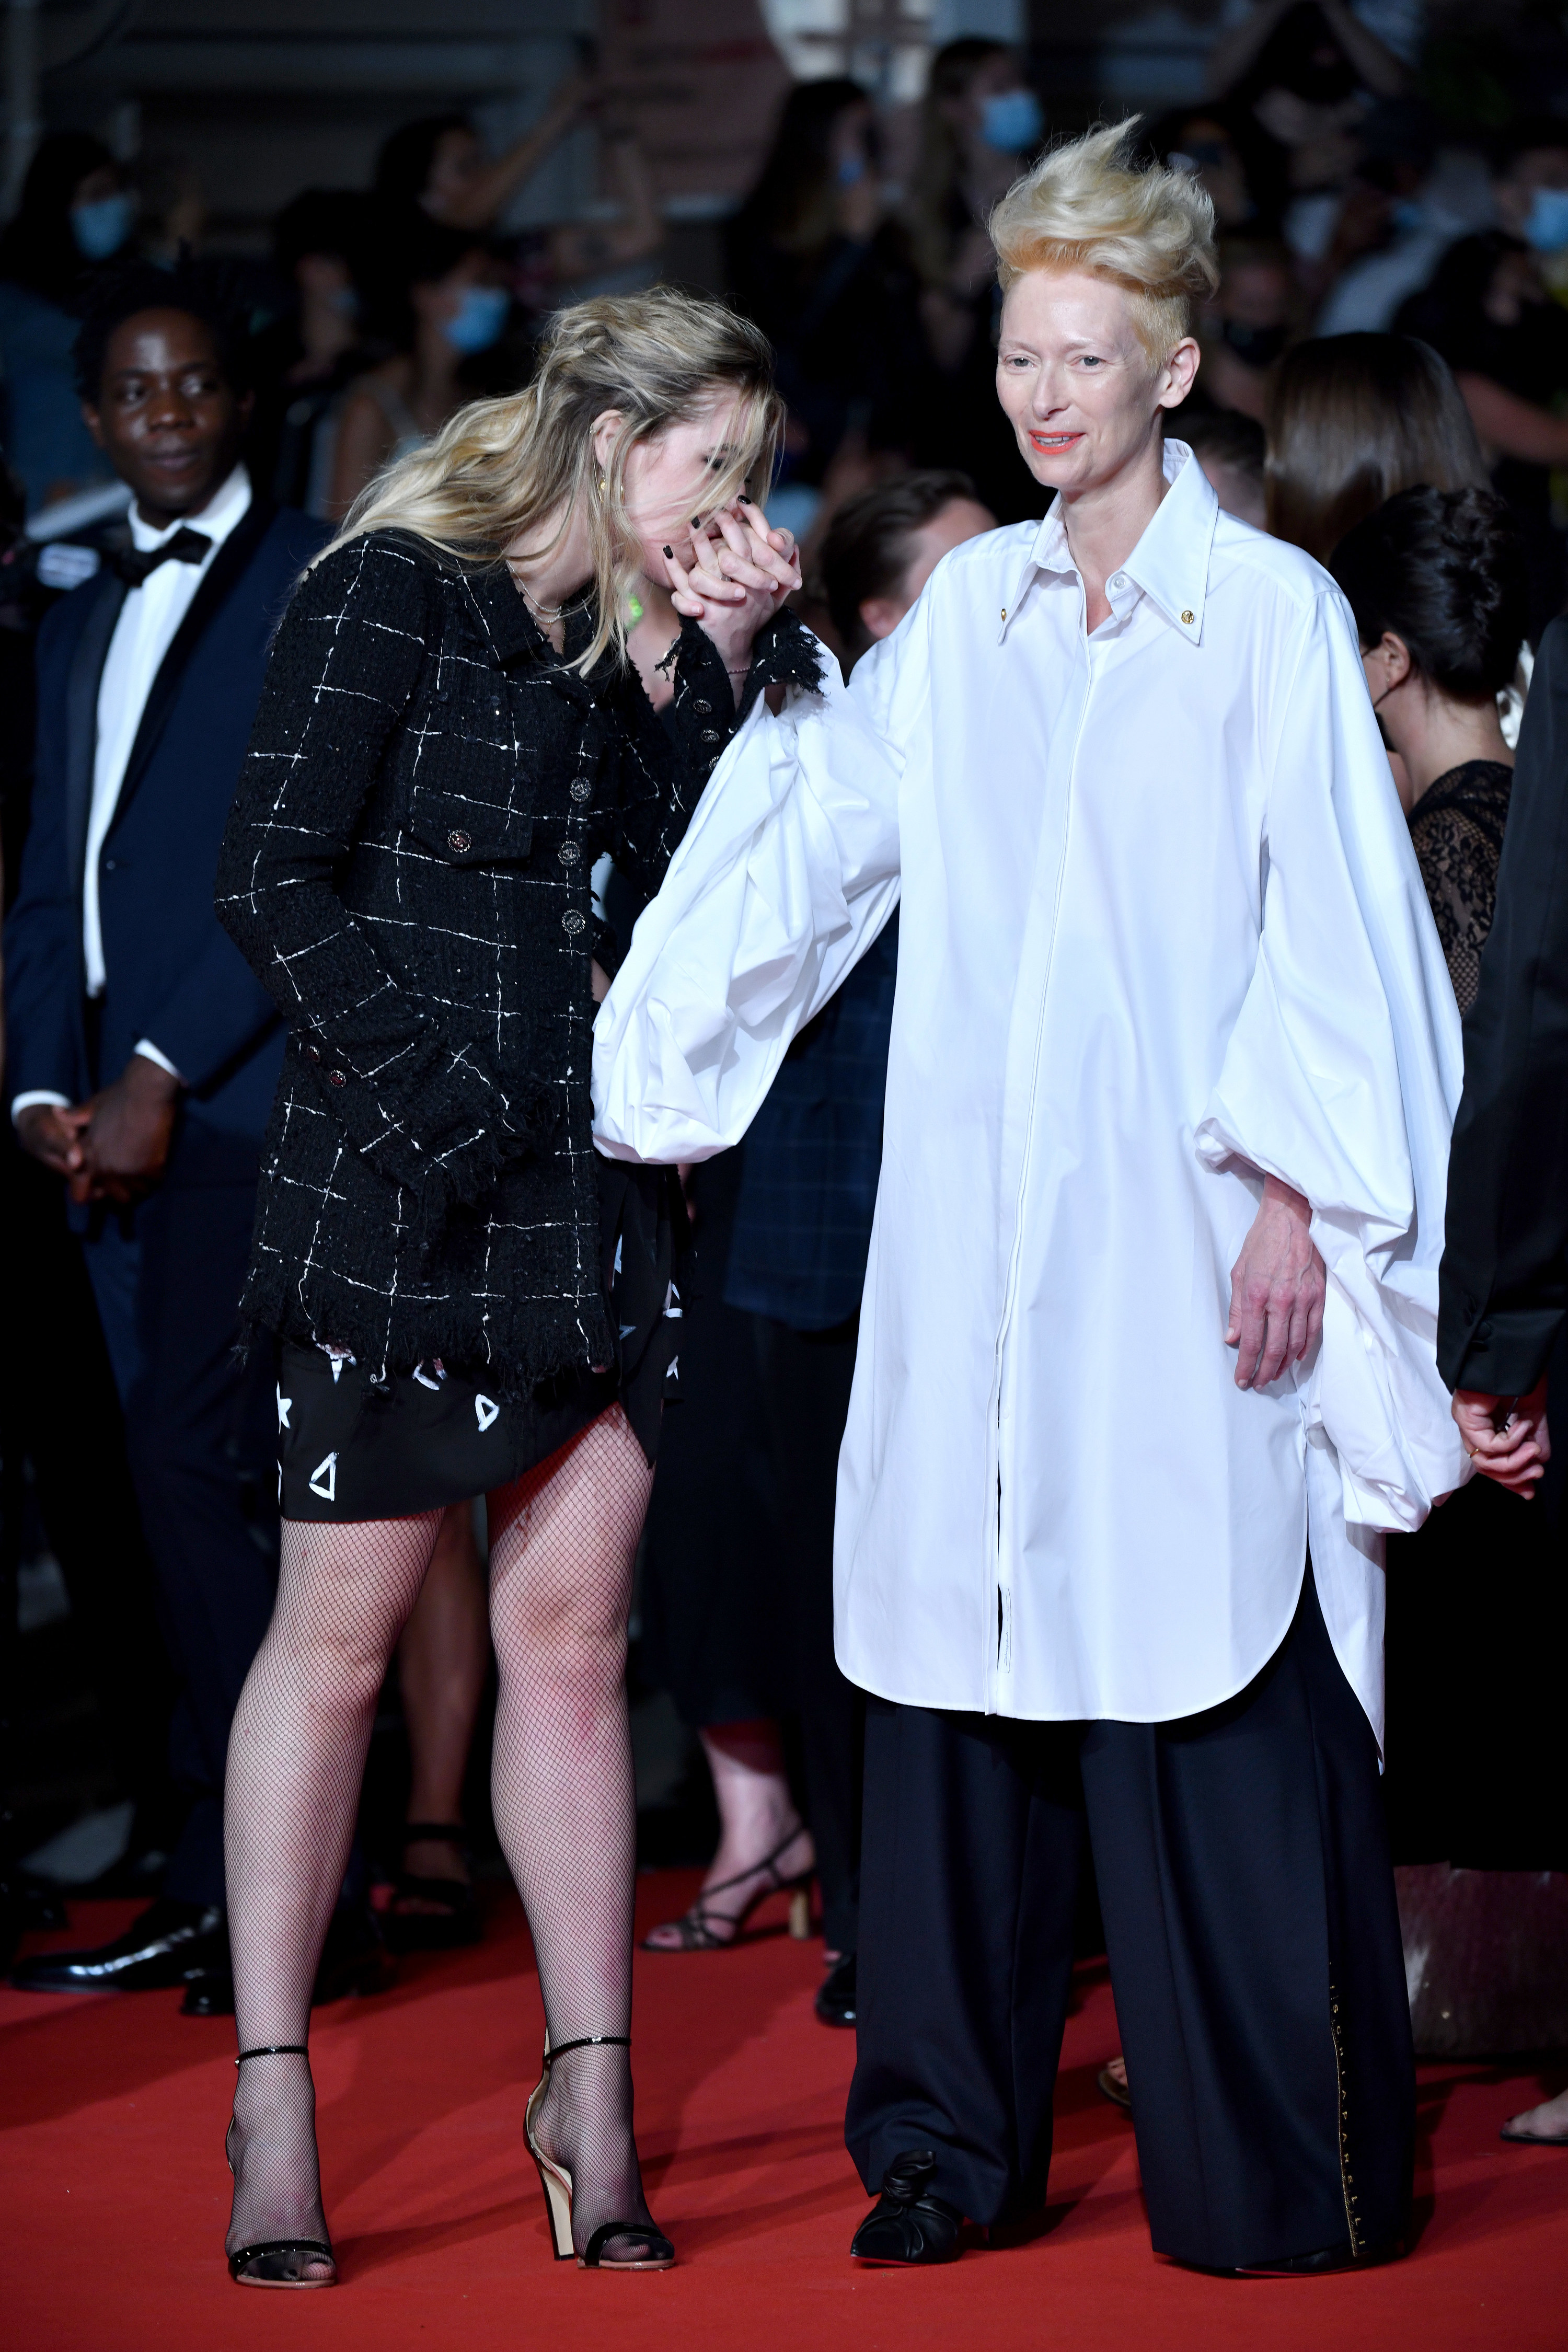 Honor Swinton Byrne and Tilda Swinton appear at the Cannes Film Festival